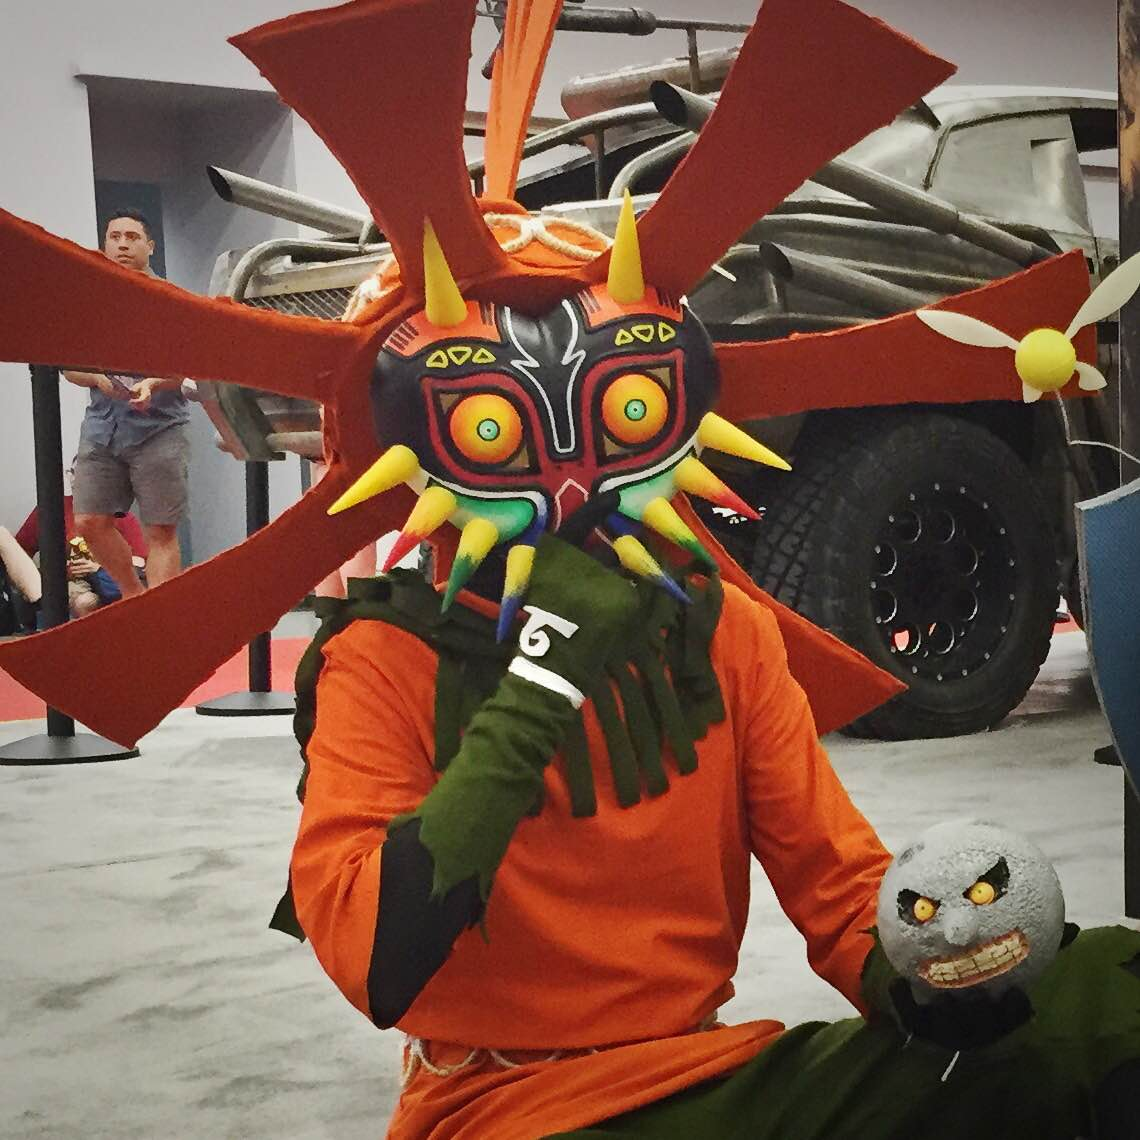 Skull Kid from Legend of Zelda: Majora's Mask Cosplay at Montreal Comiccon 2015 Photo © Leah Jewer / Girls on Games